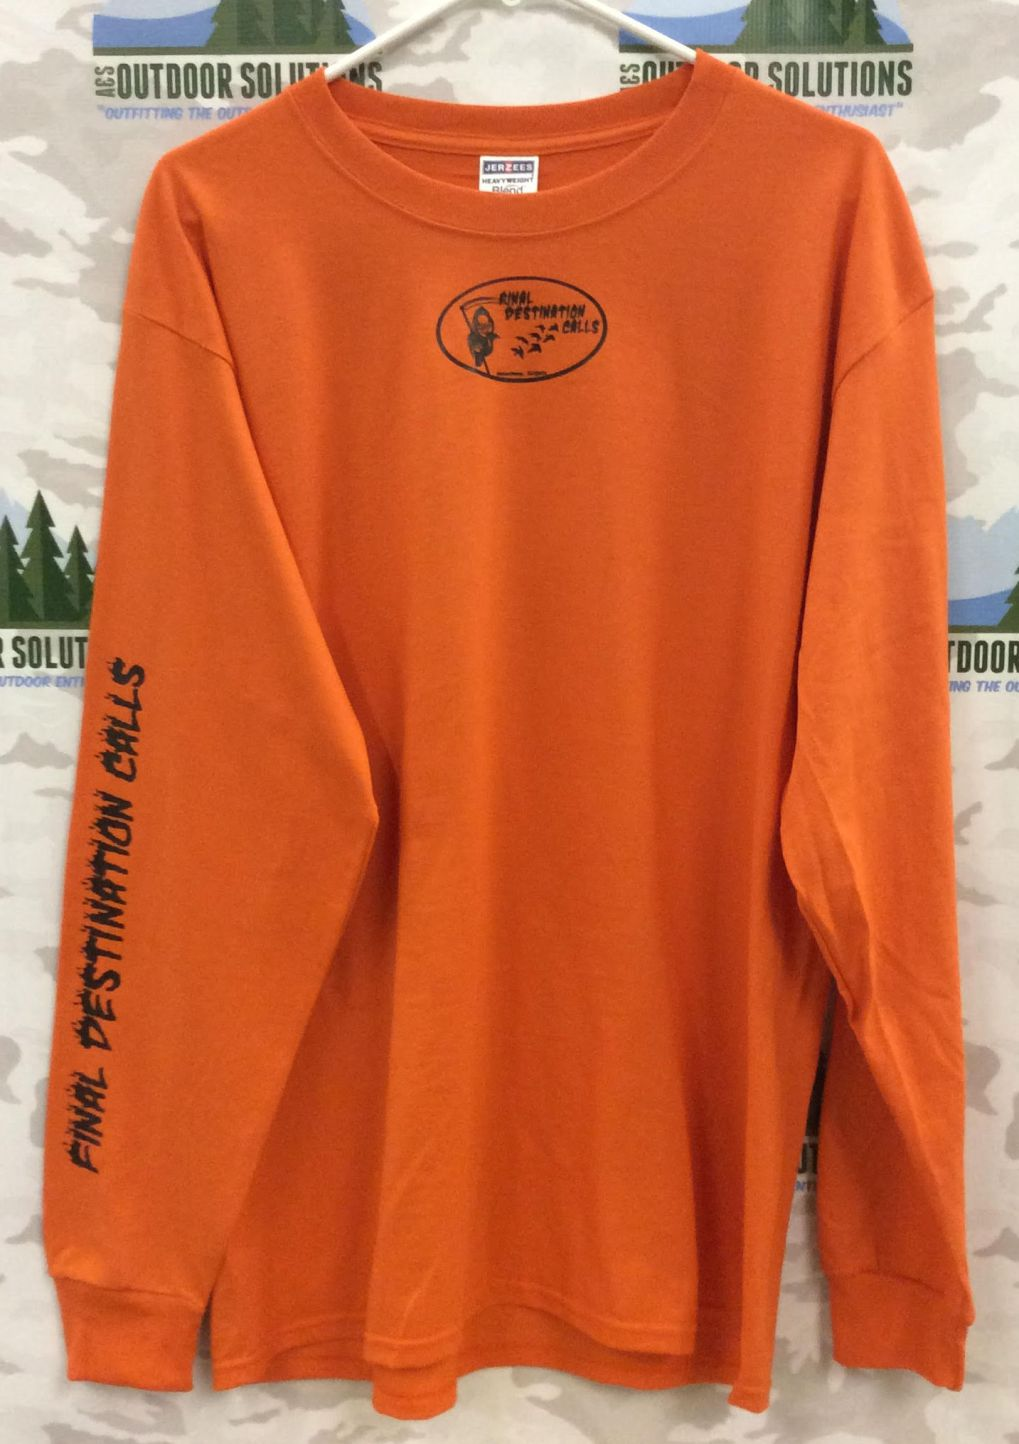 Final Destination Calls Long Sleeve Tee Shirt Burnt Orange